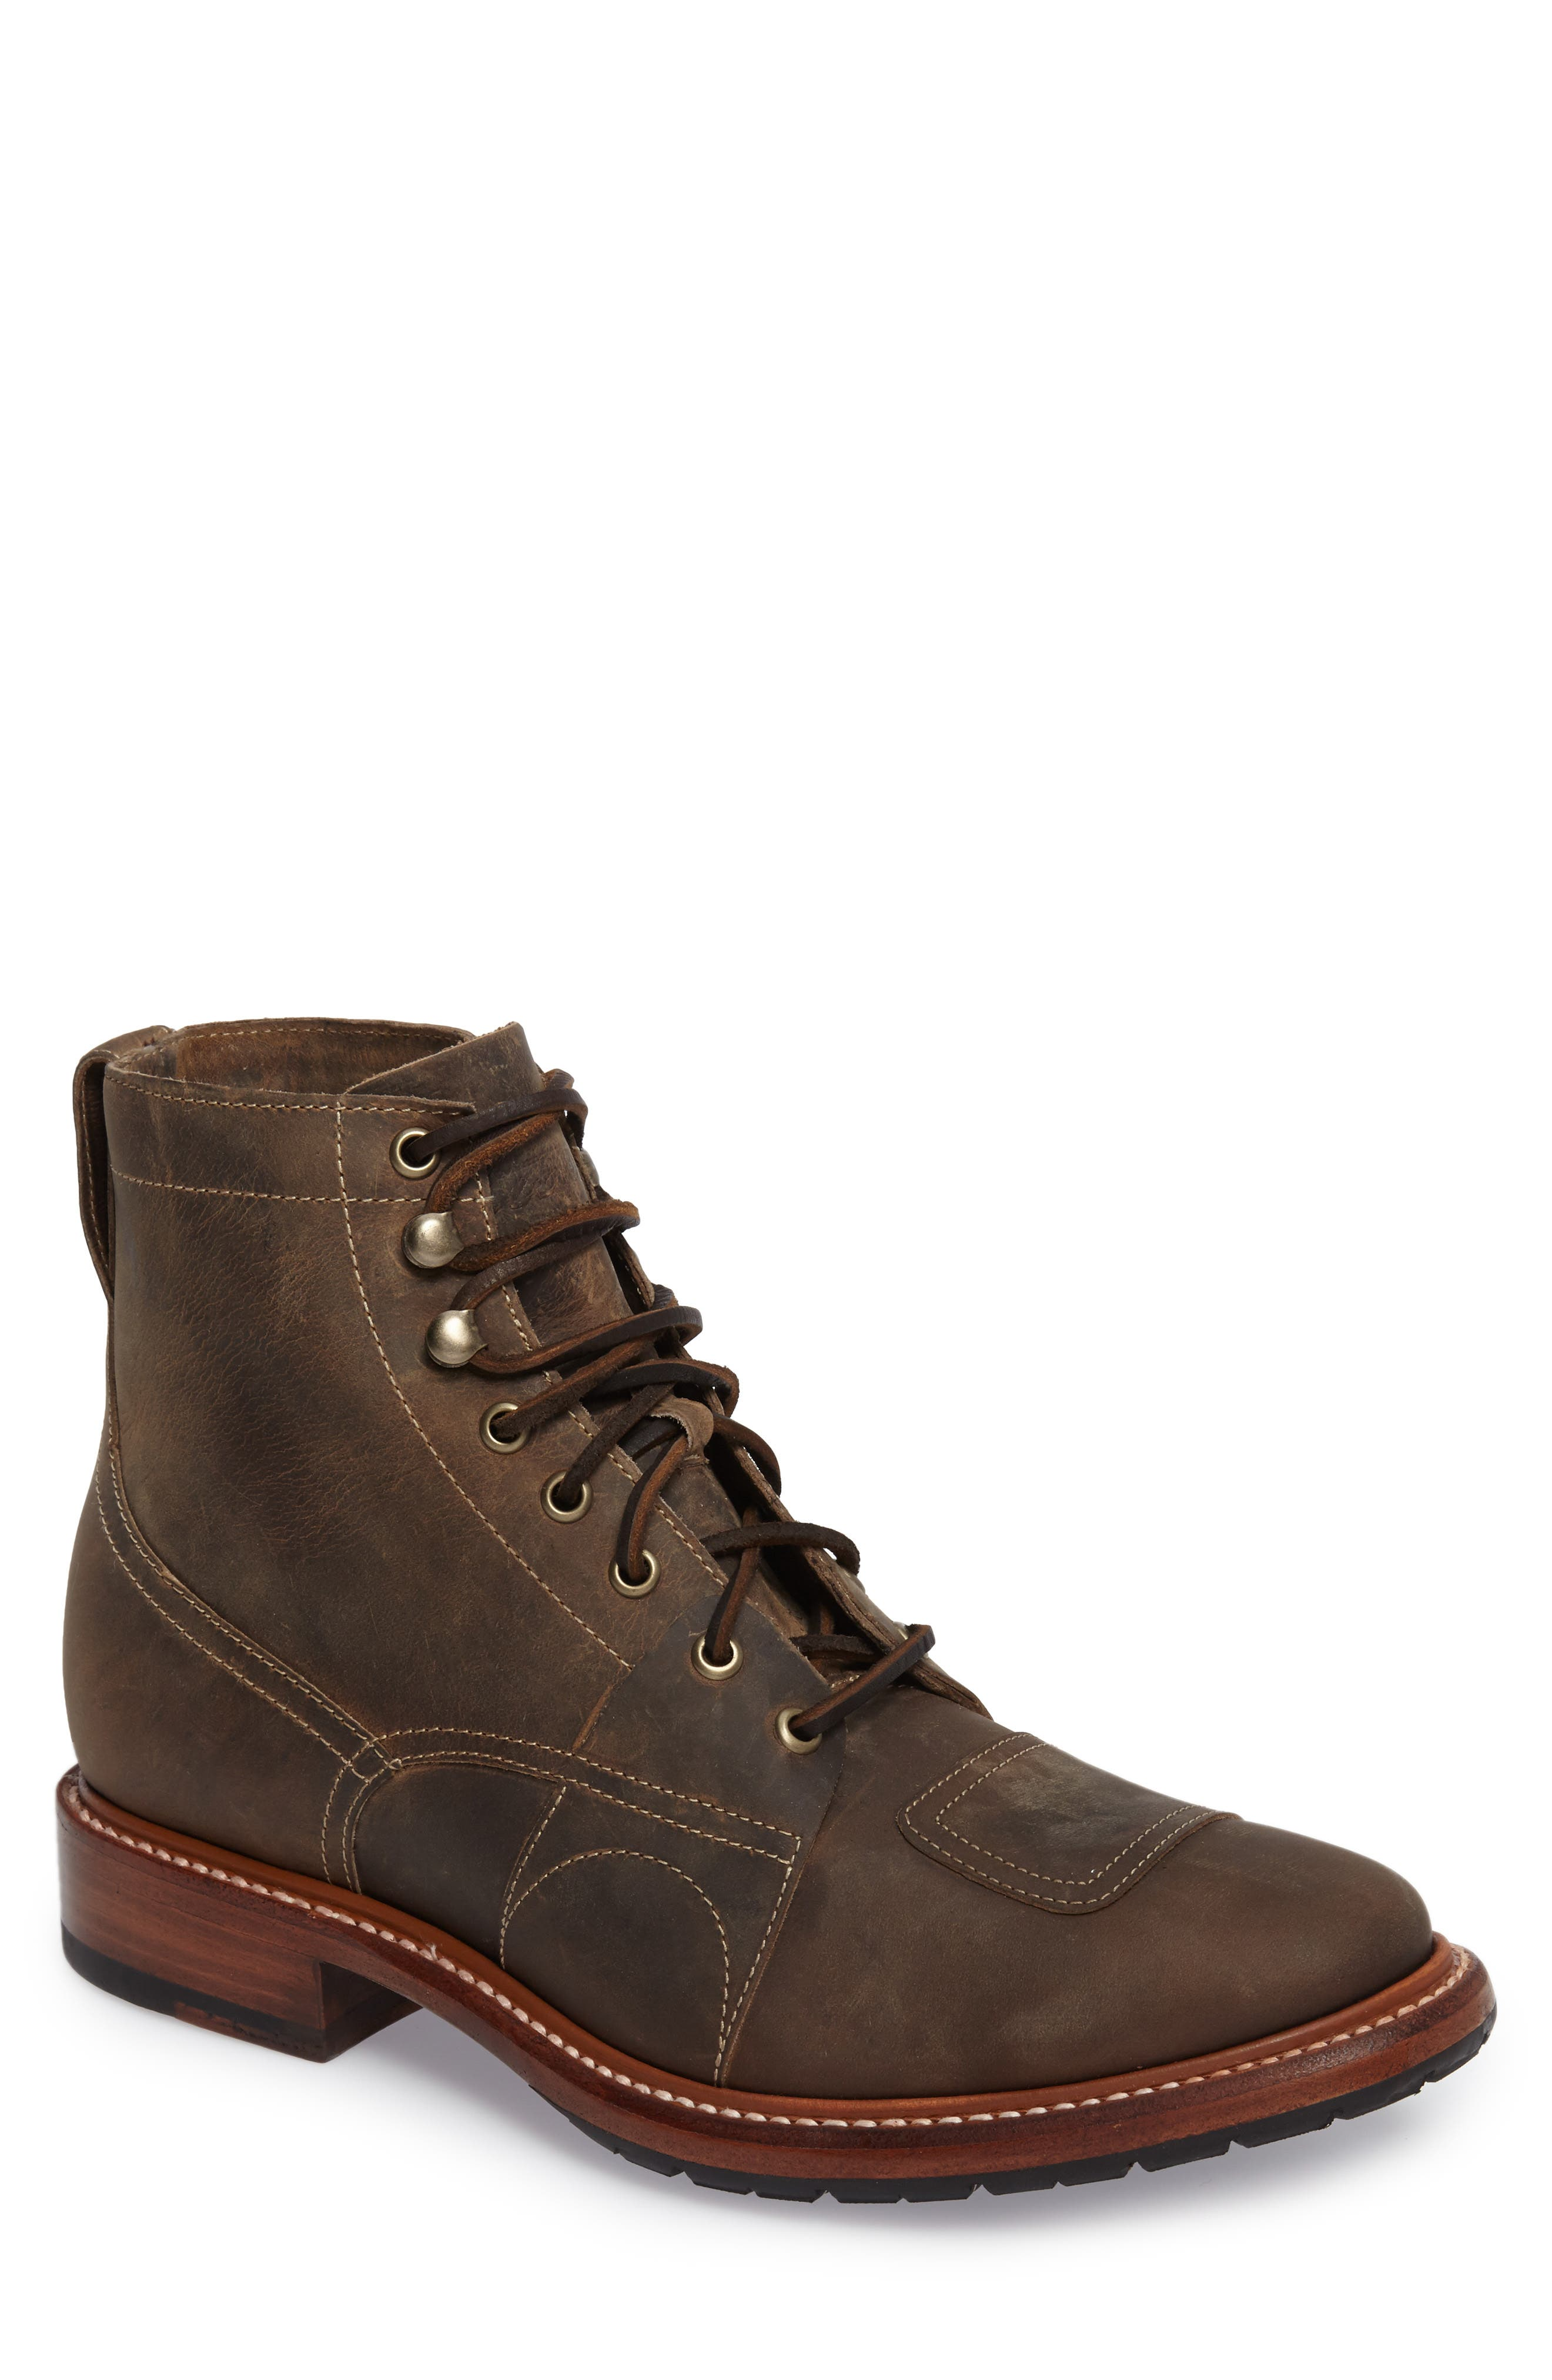 Cypress Plain Toe Boot,                         Main,                         color, Brown Leather